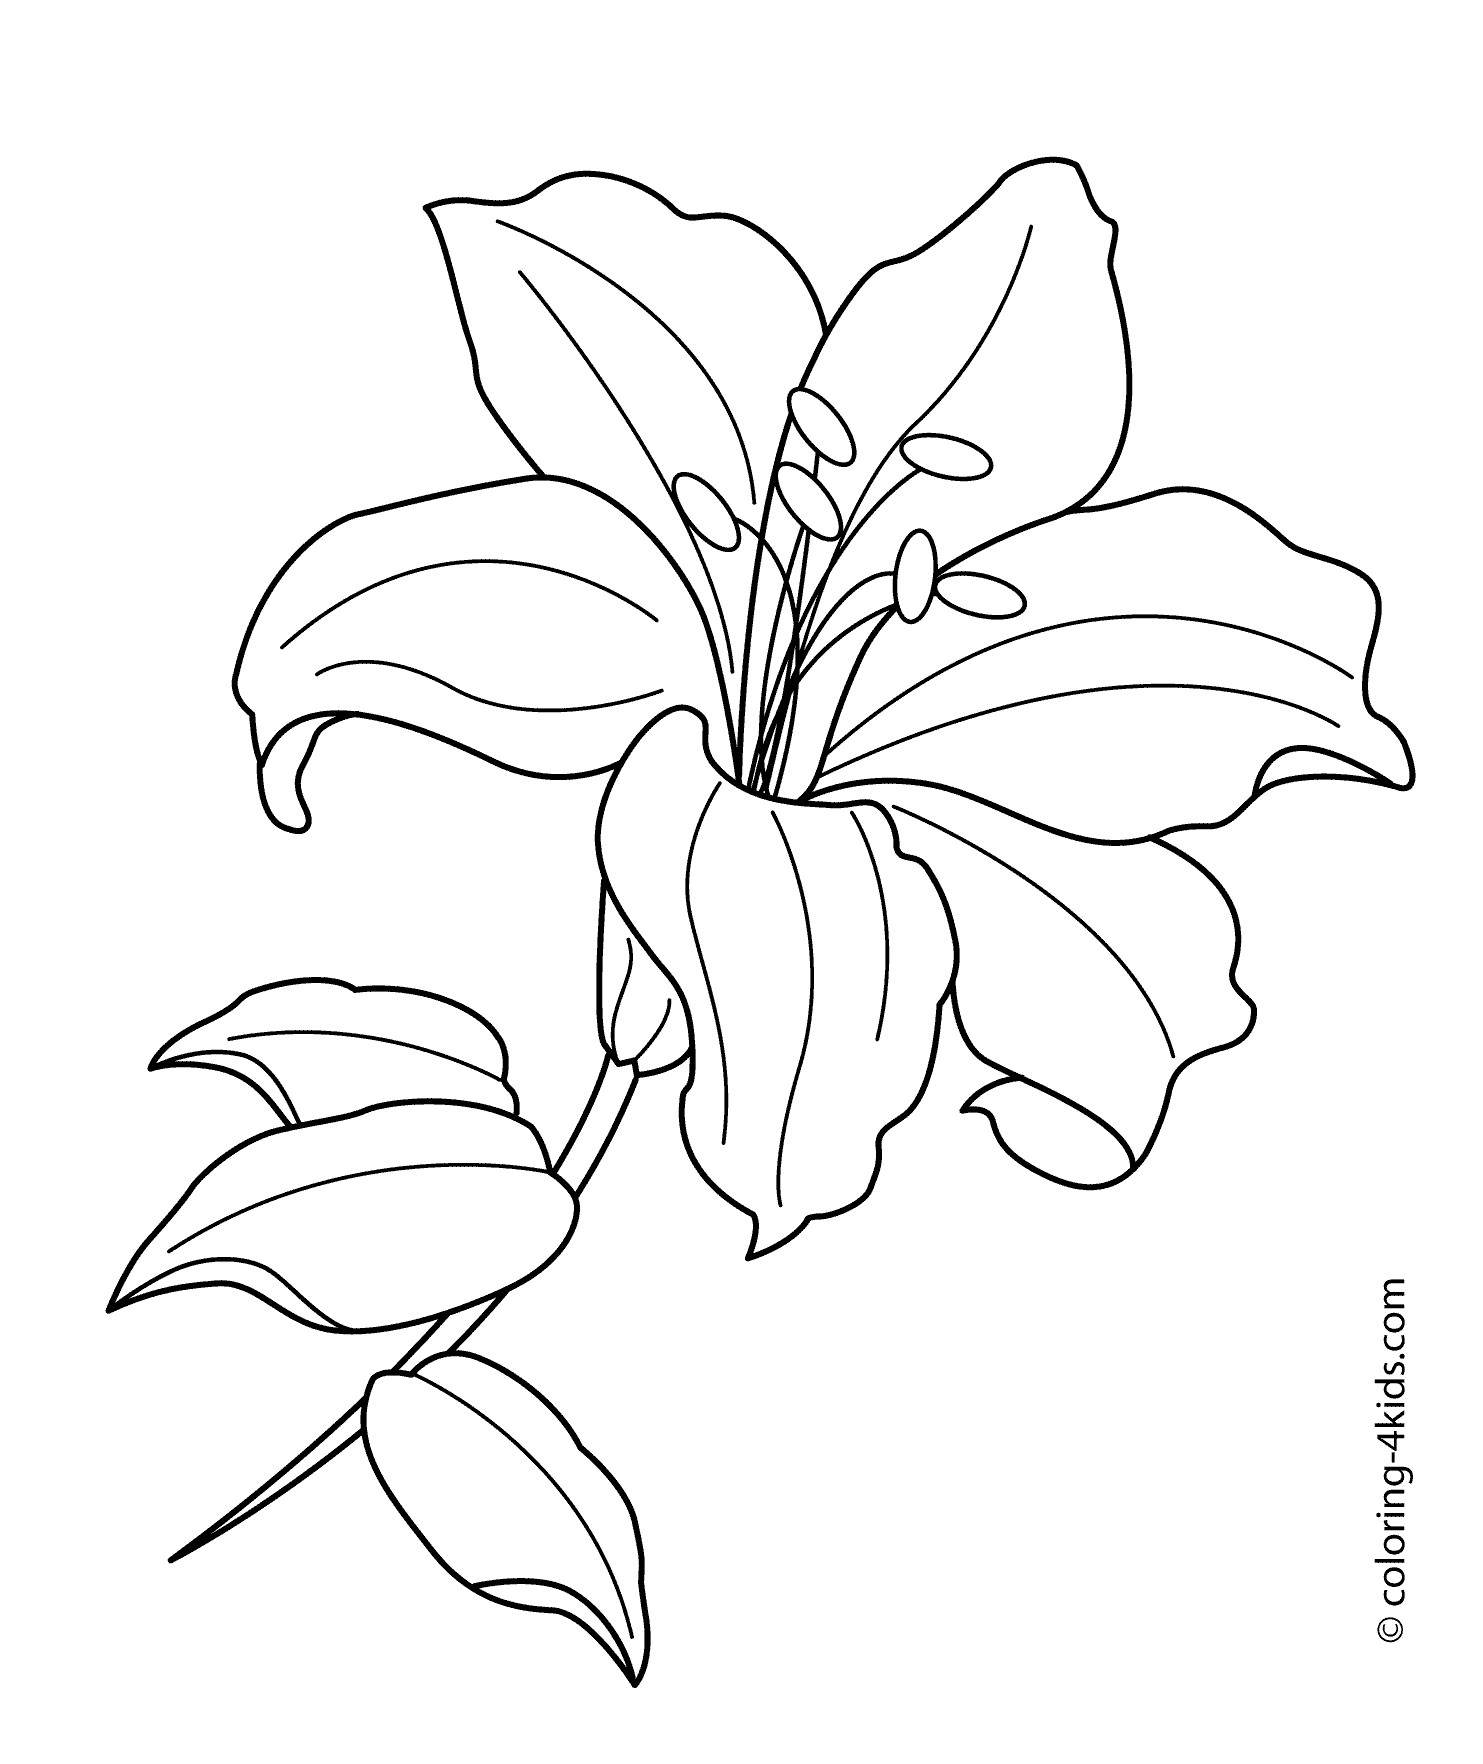 coloring image of a flower wedding flowers coloring pages at getcoloringscom free of image coloring a flower